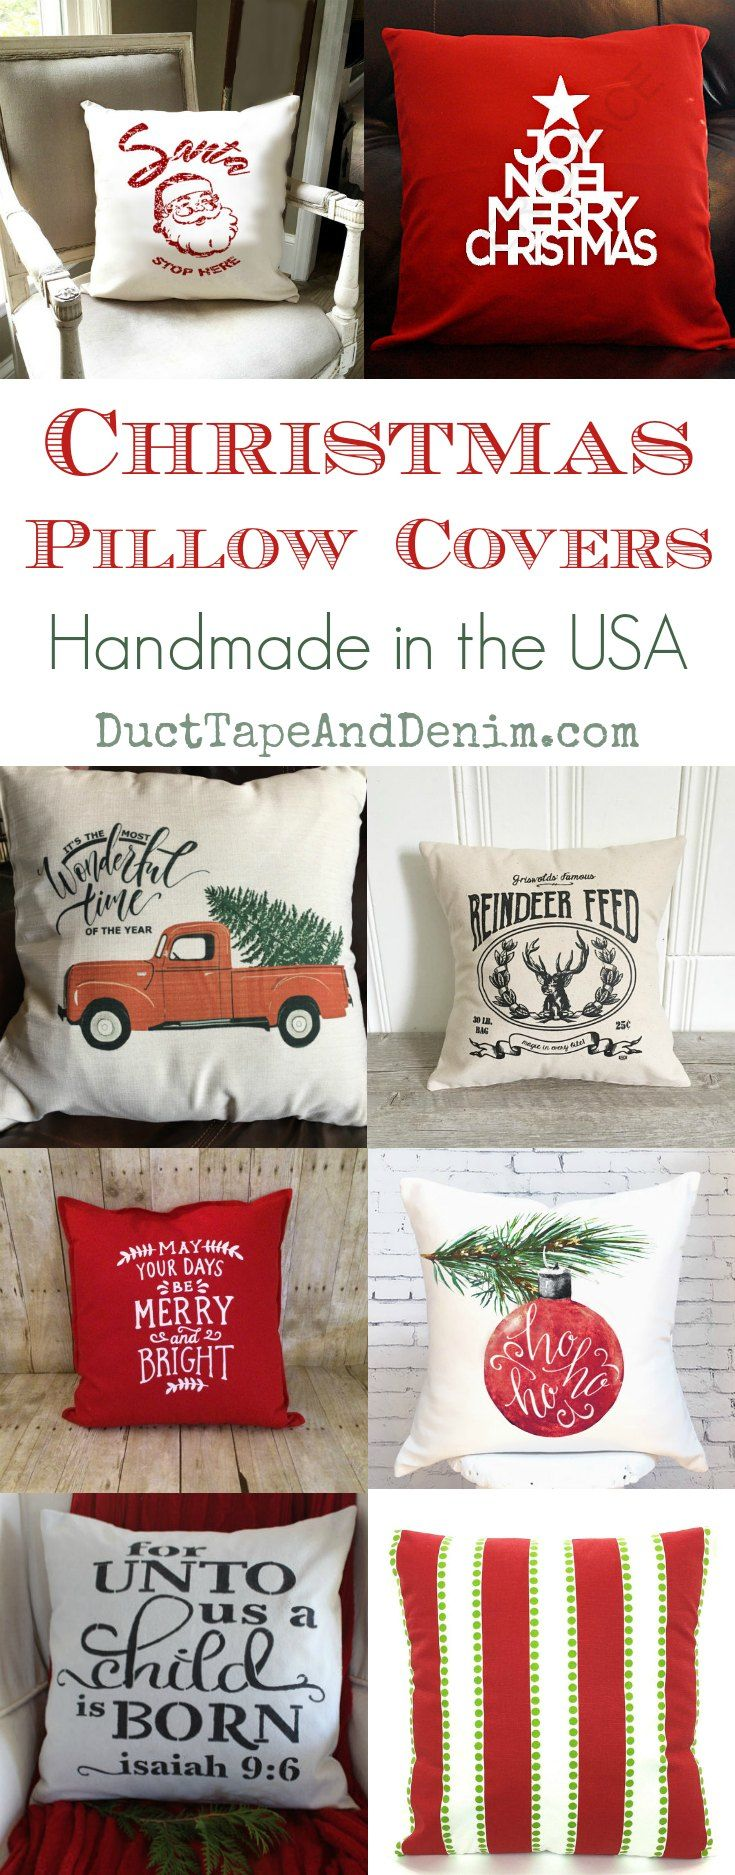 Christmas pillow covers, handmade in the USA! Holiday pillows, throw blankets, DIY Christmas, and holiday decor ideas on DuctTapeAndDenim.com